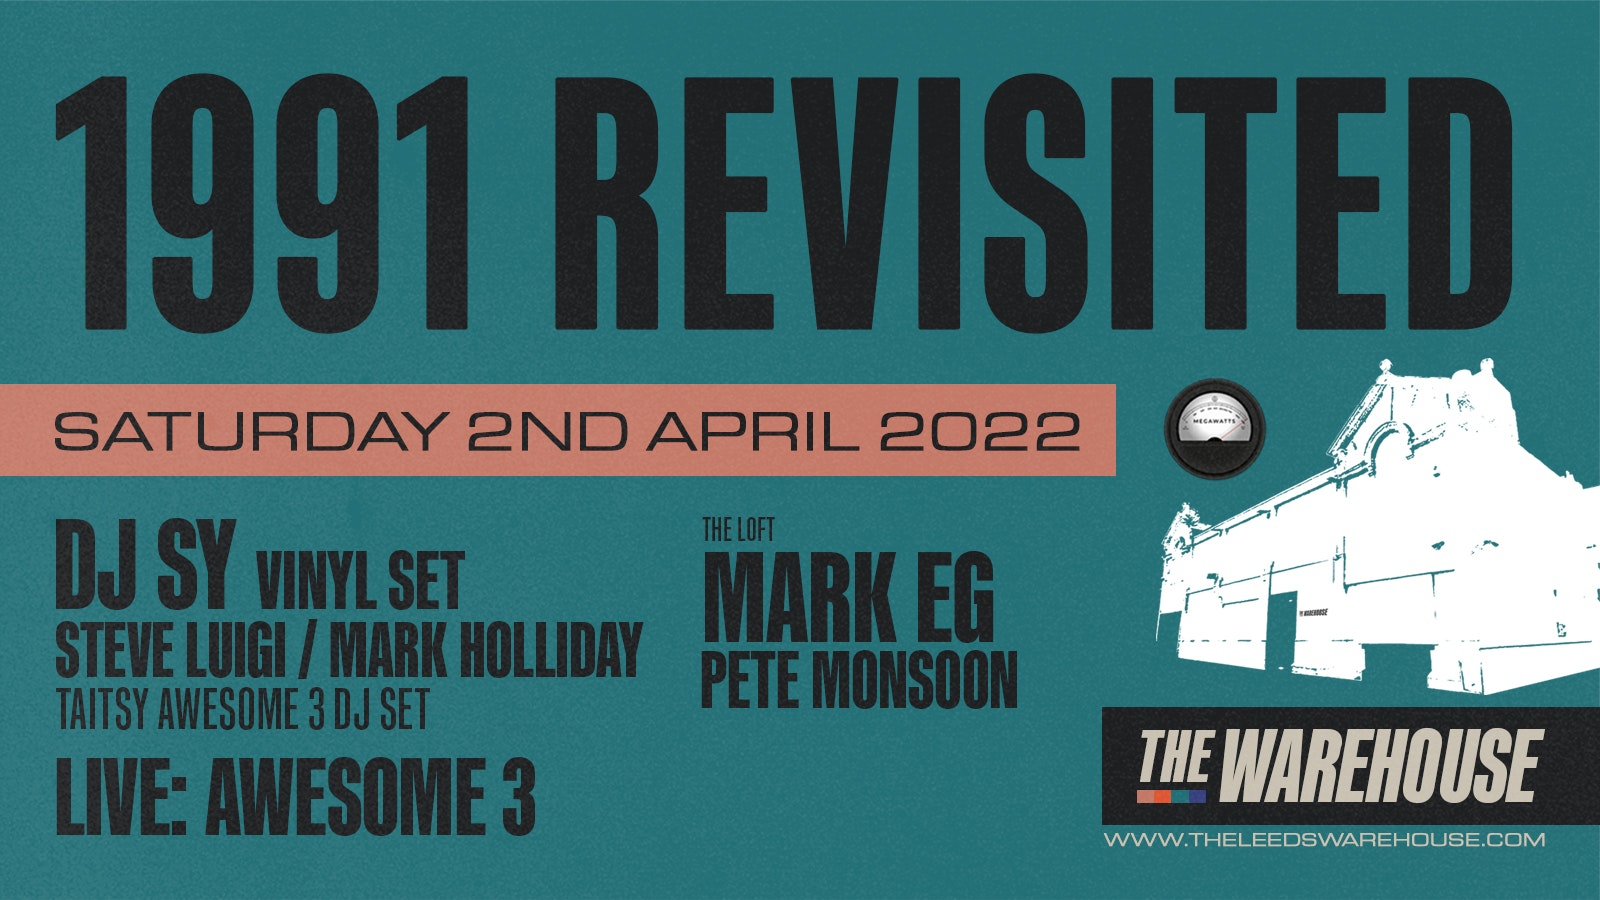 1991 Revisited – Live & Club